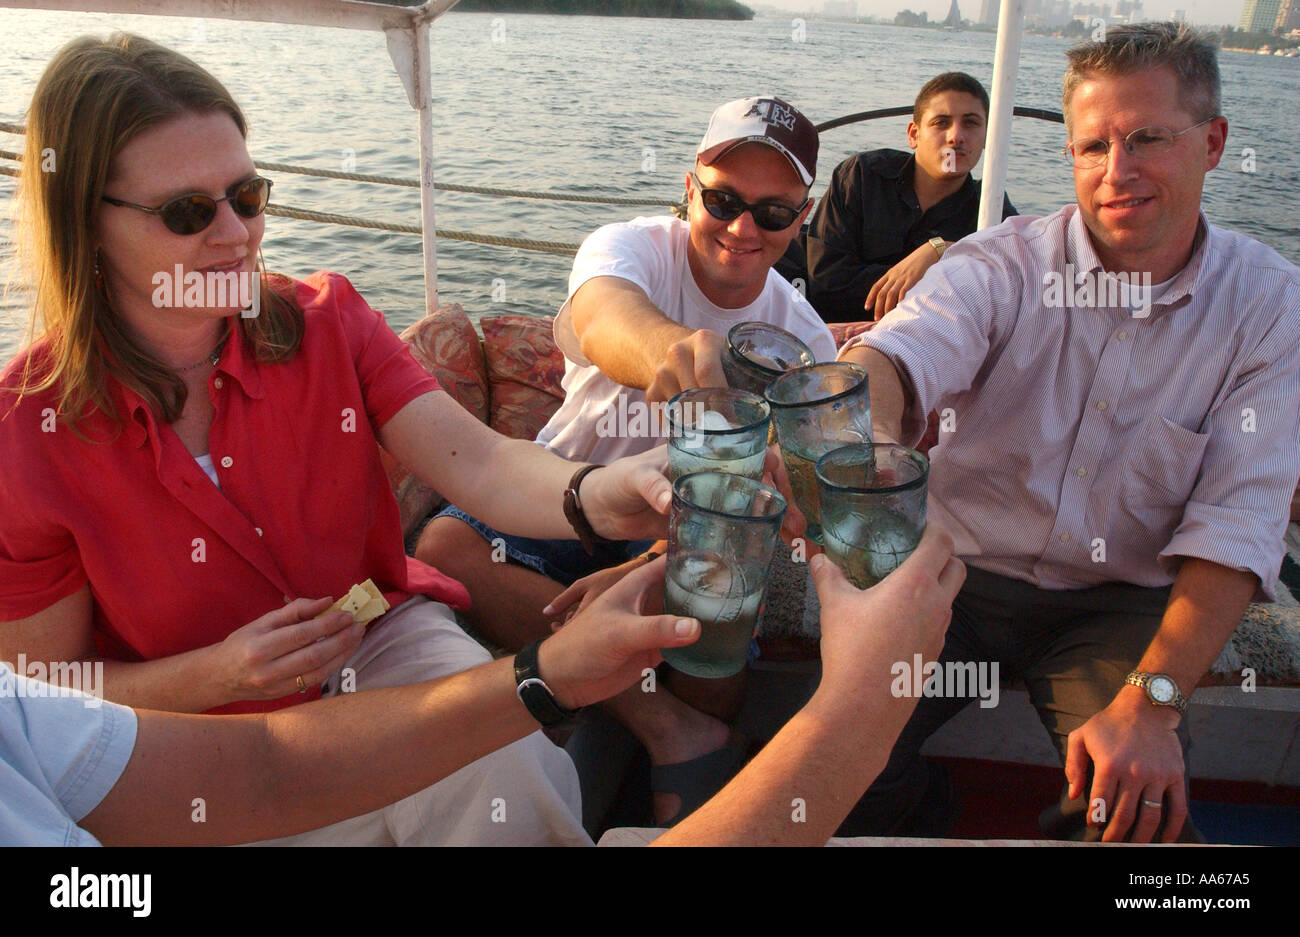 Major Rebecca Holt Tina Holt red shirt who is the wife of SGT Brett Long and LCDR Dr Daniel E Szumlas glasses take a felucca - Stock Image